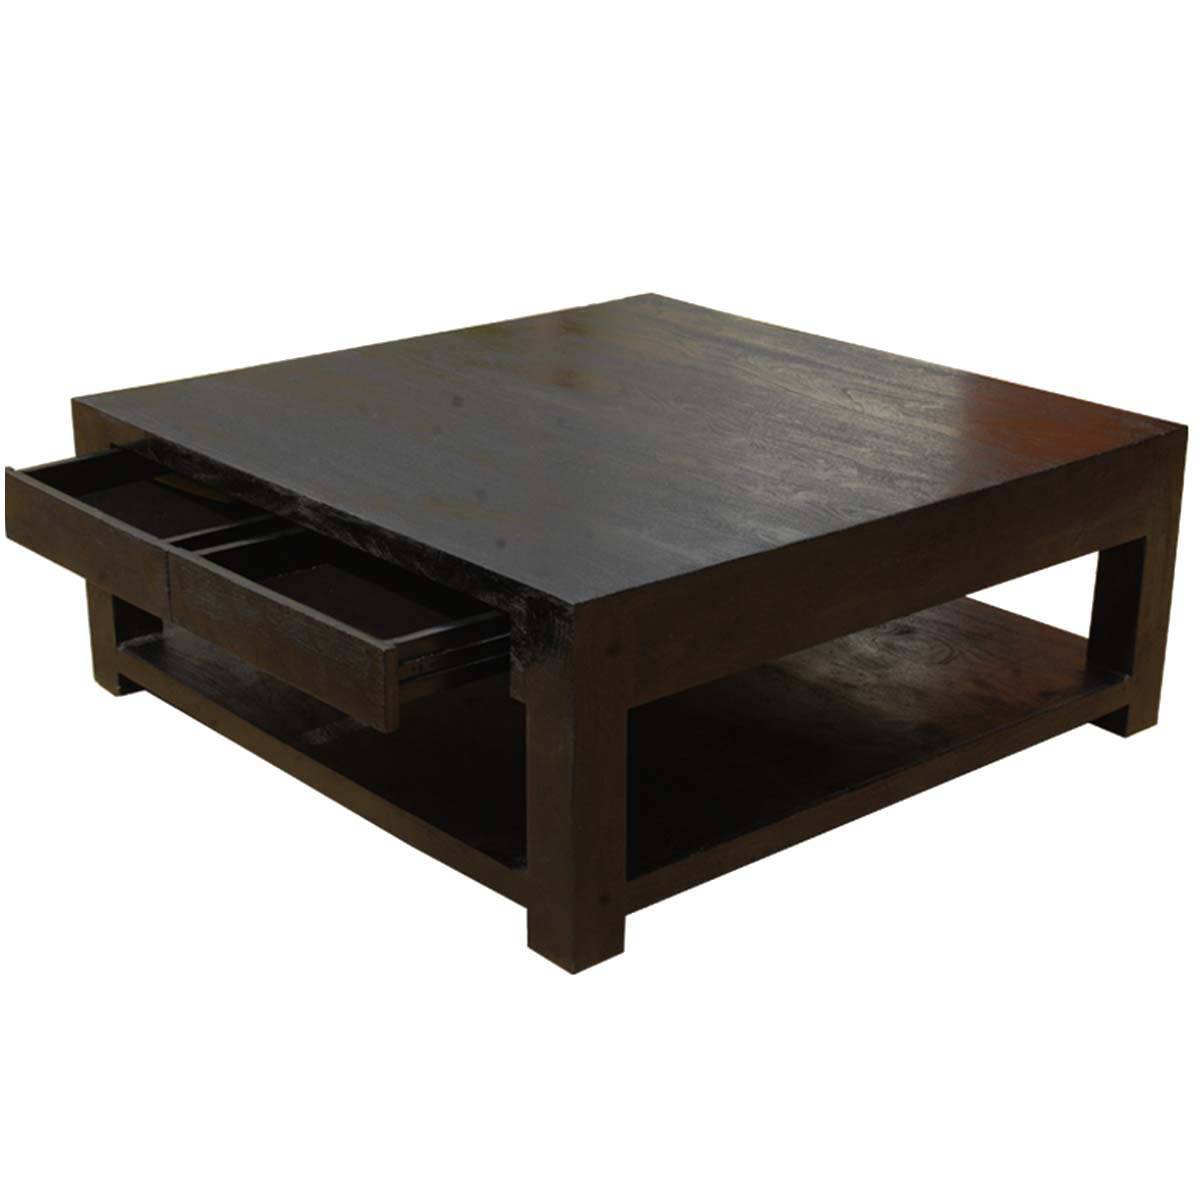 Furniture: Modern And Contemporary Design Of Espresso Coffee Table intended for Square Coffee Table Modern (Image 8 of 15)